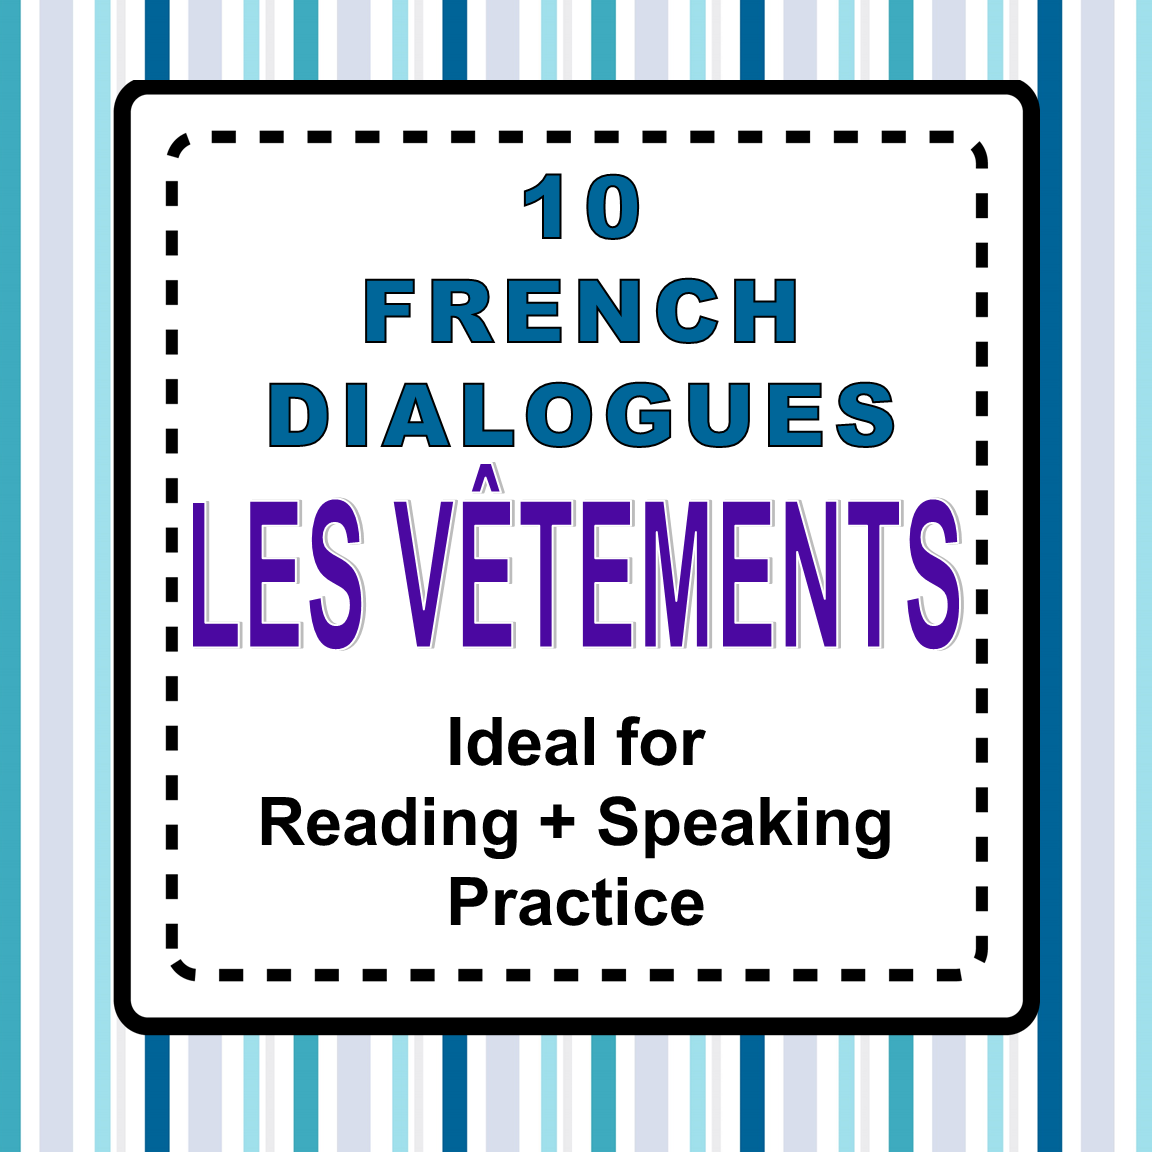 10 French Dialogues